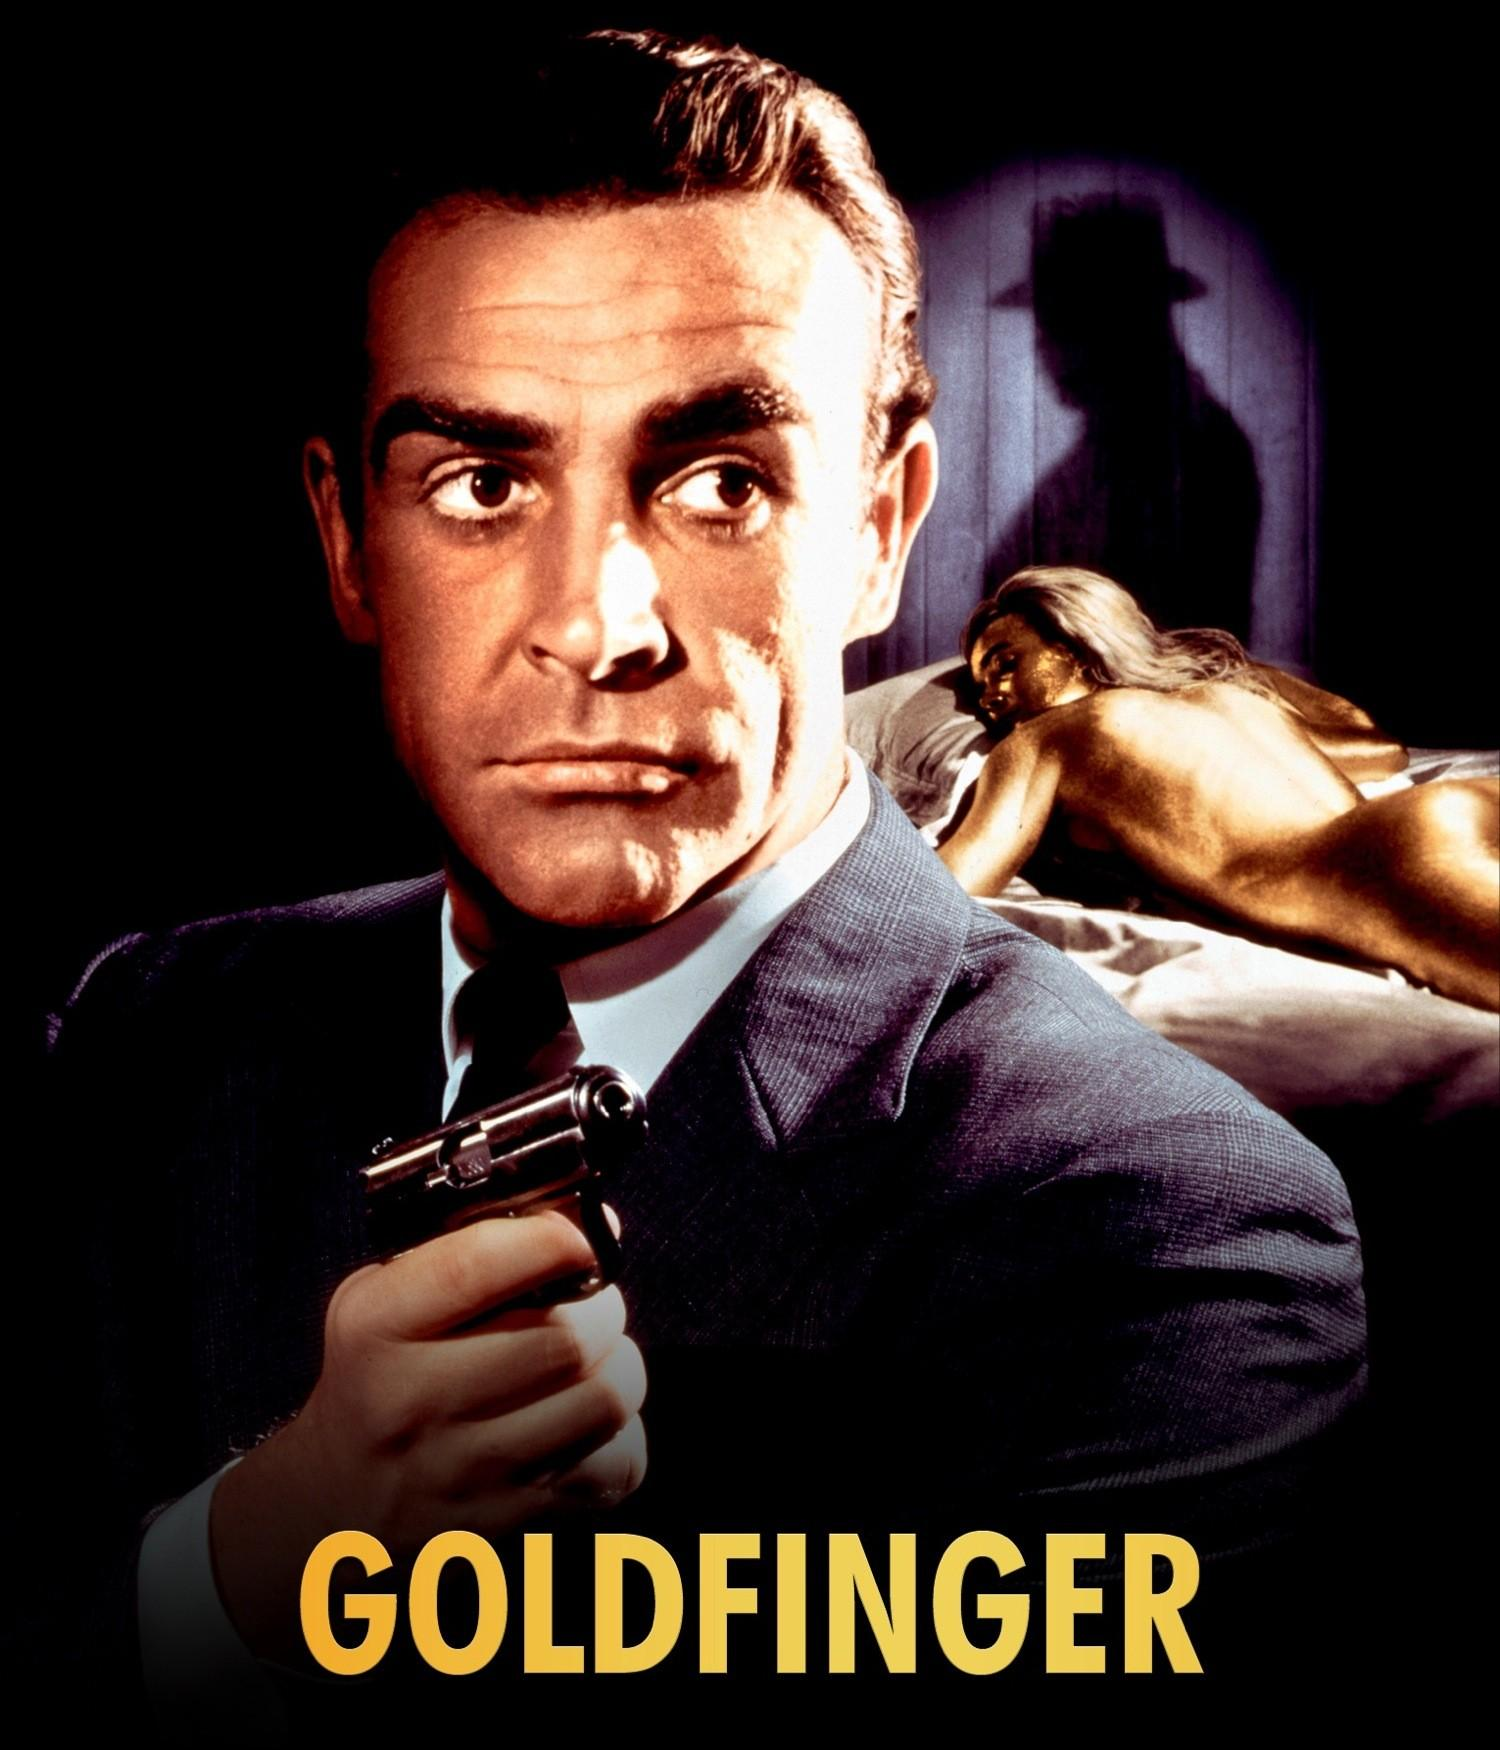 goldfinger james bond 007